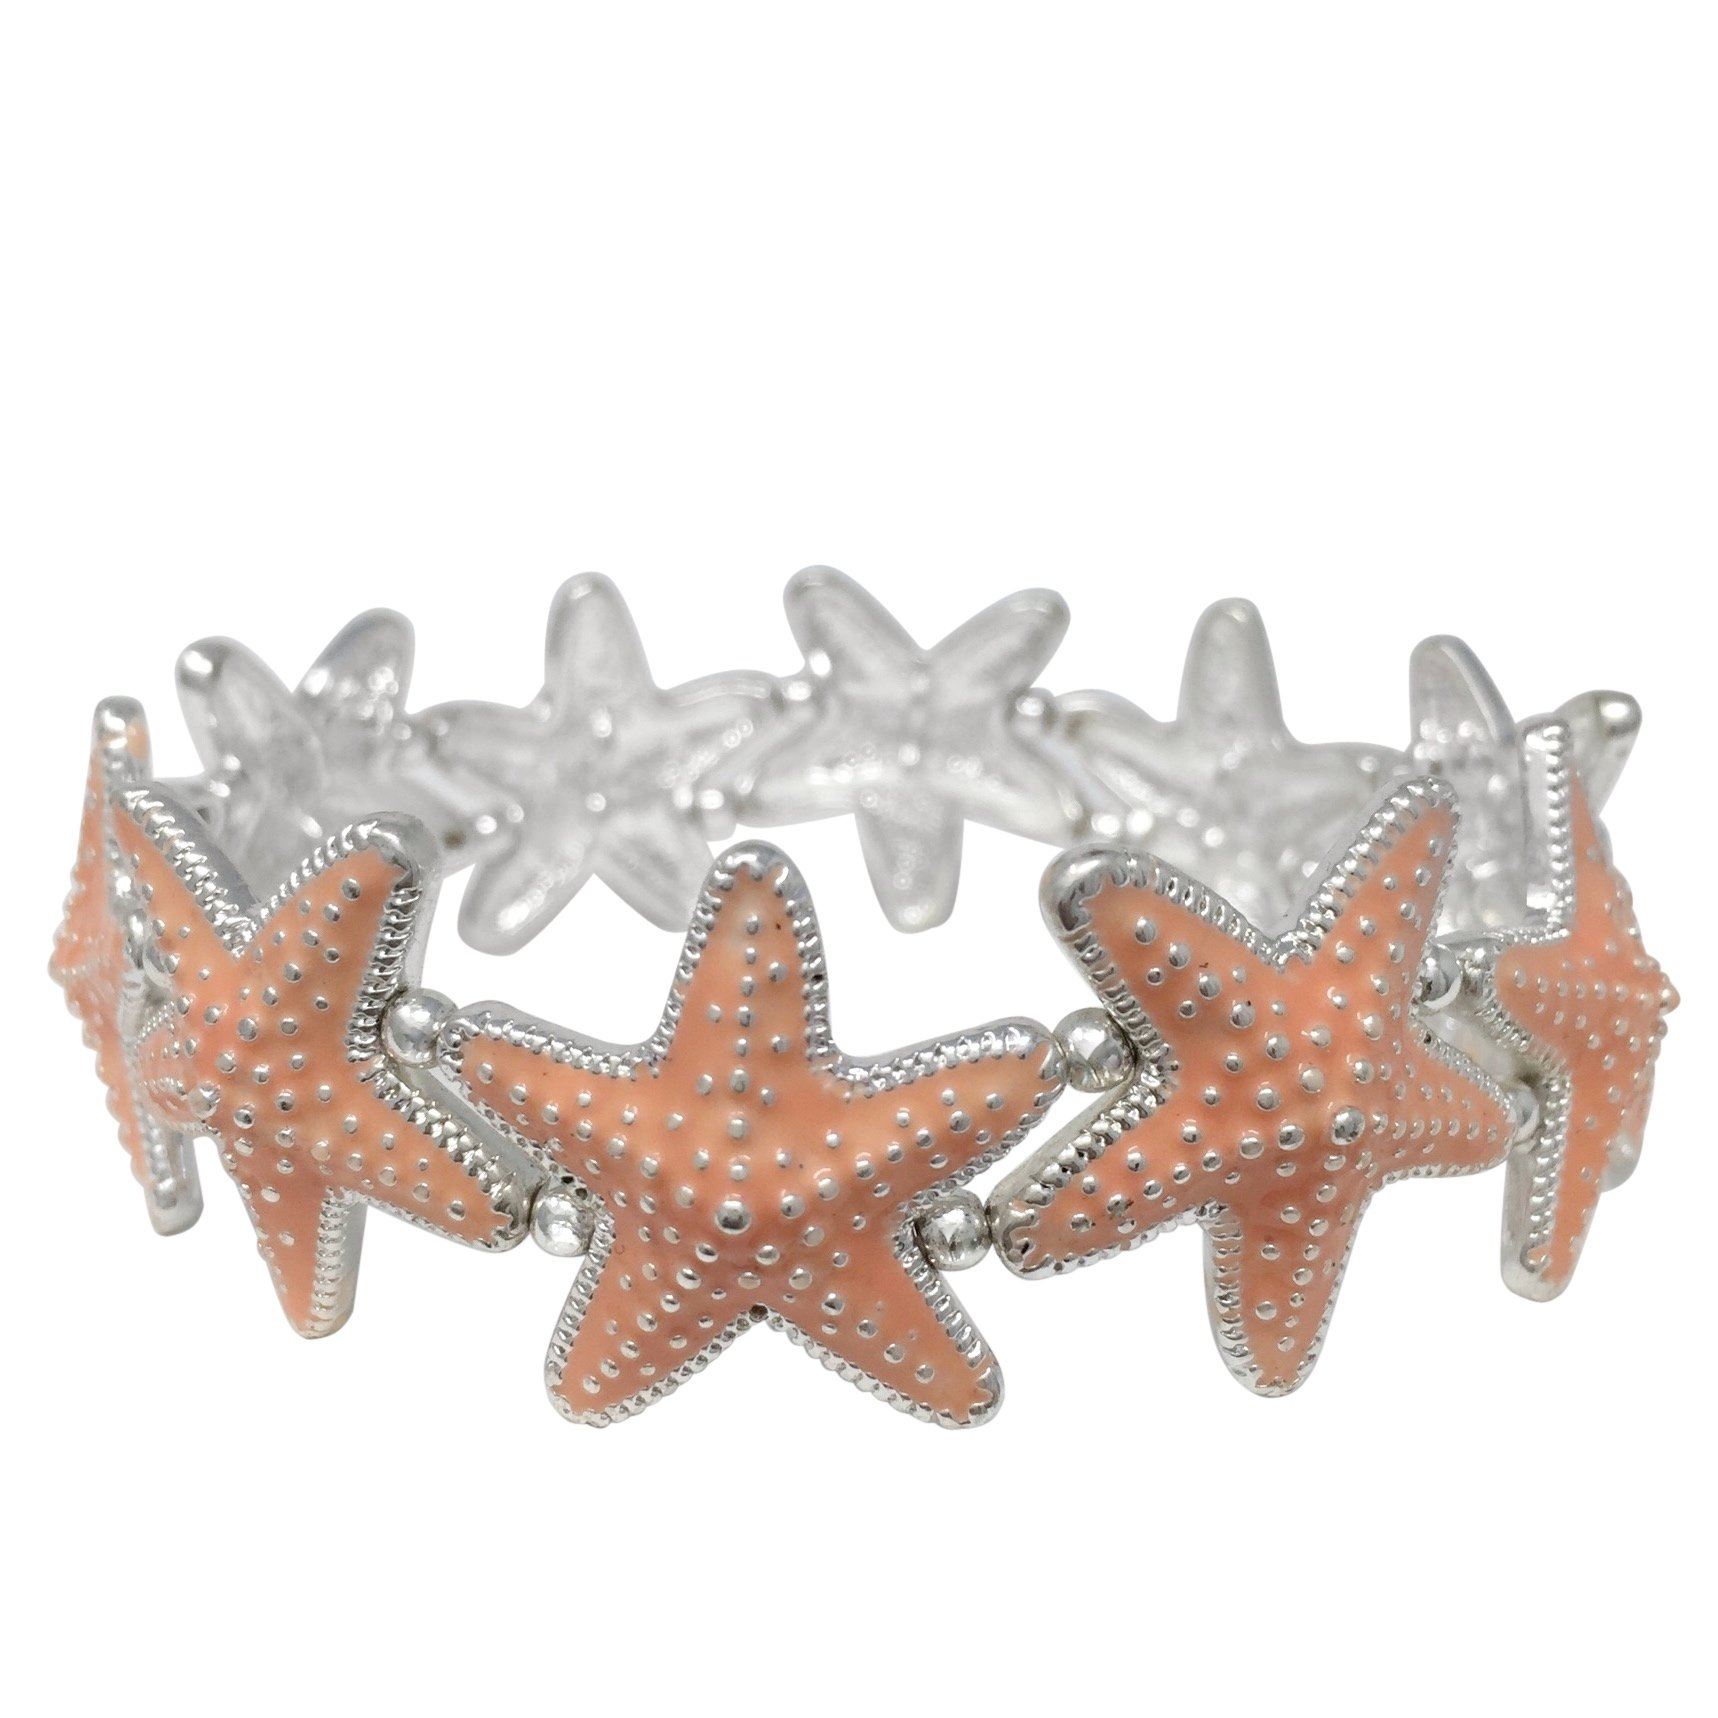 Colored Starfish Sealife Silver Tone Stretch Bracelet - Assorted colors (Peach)